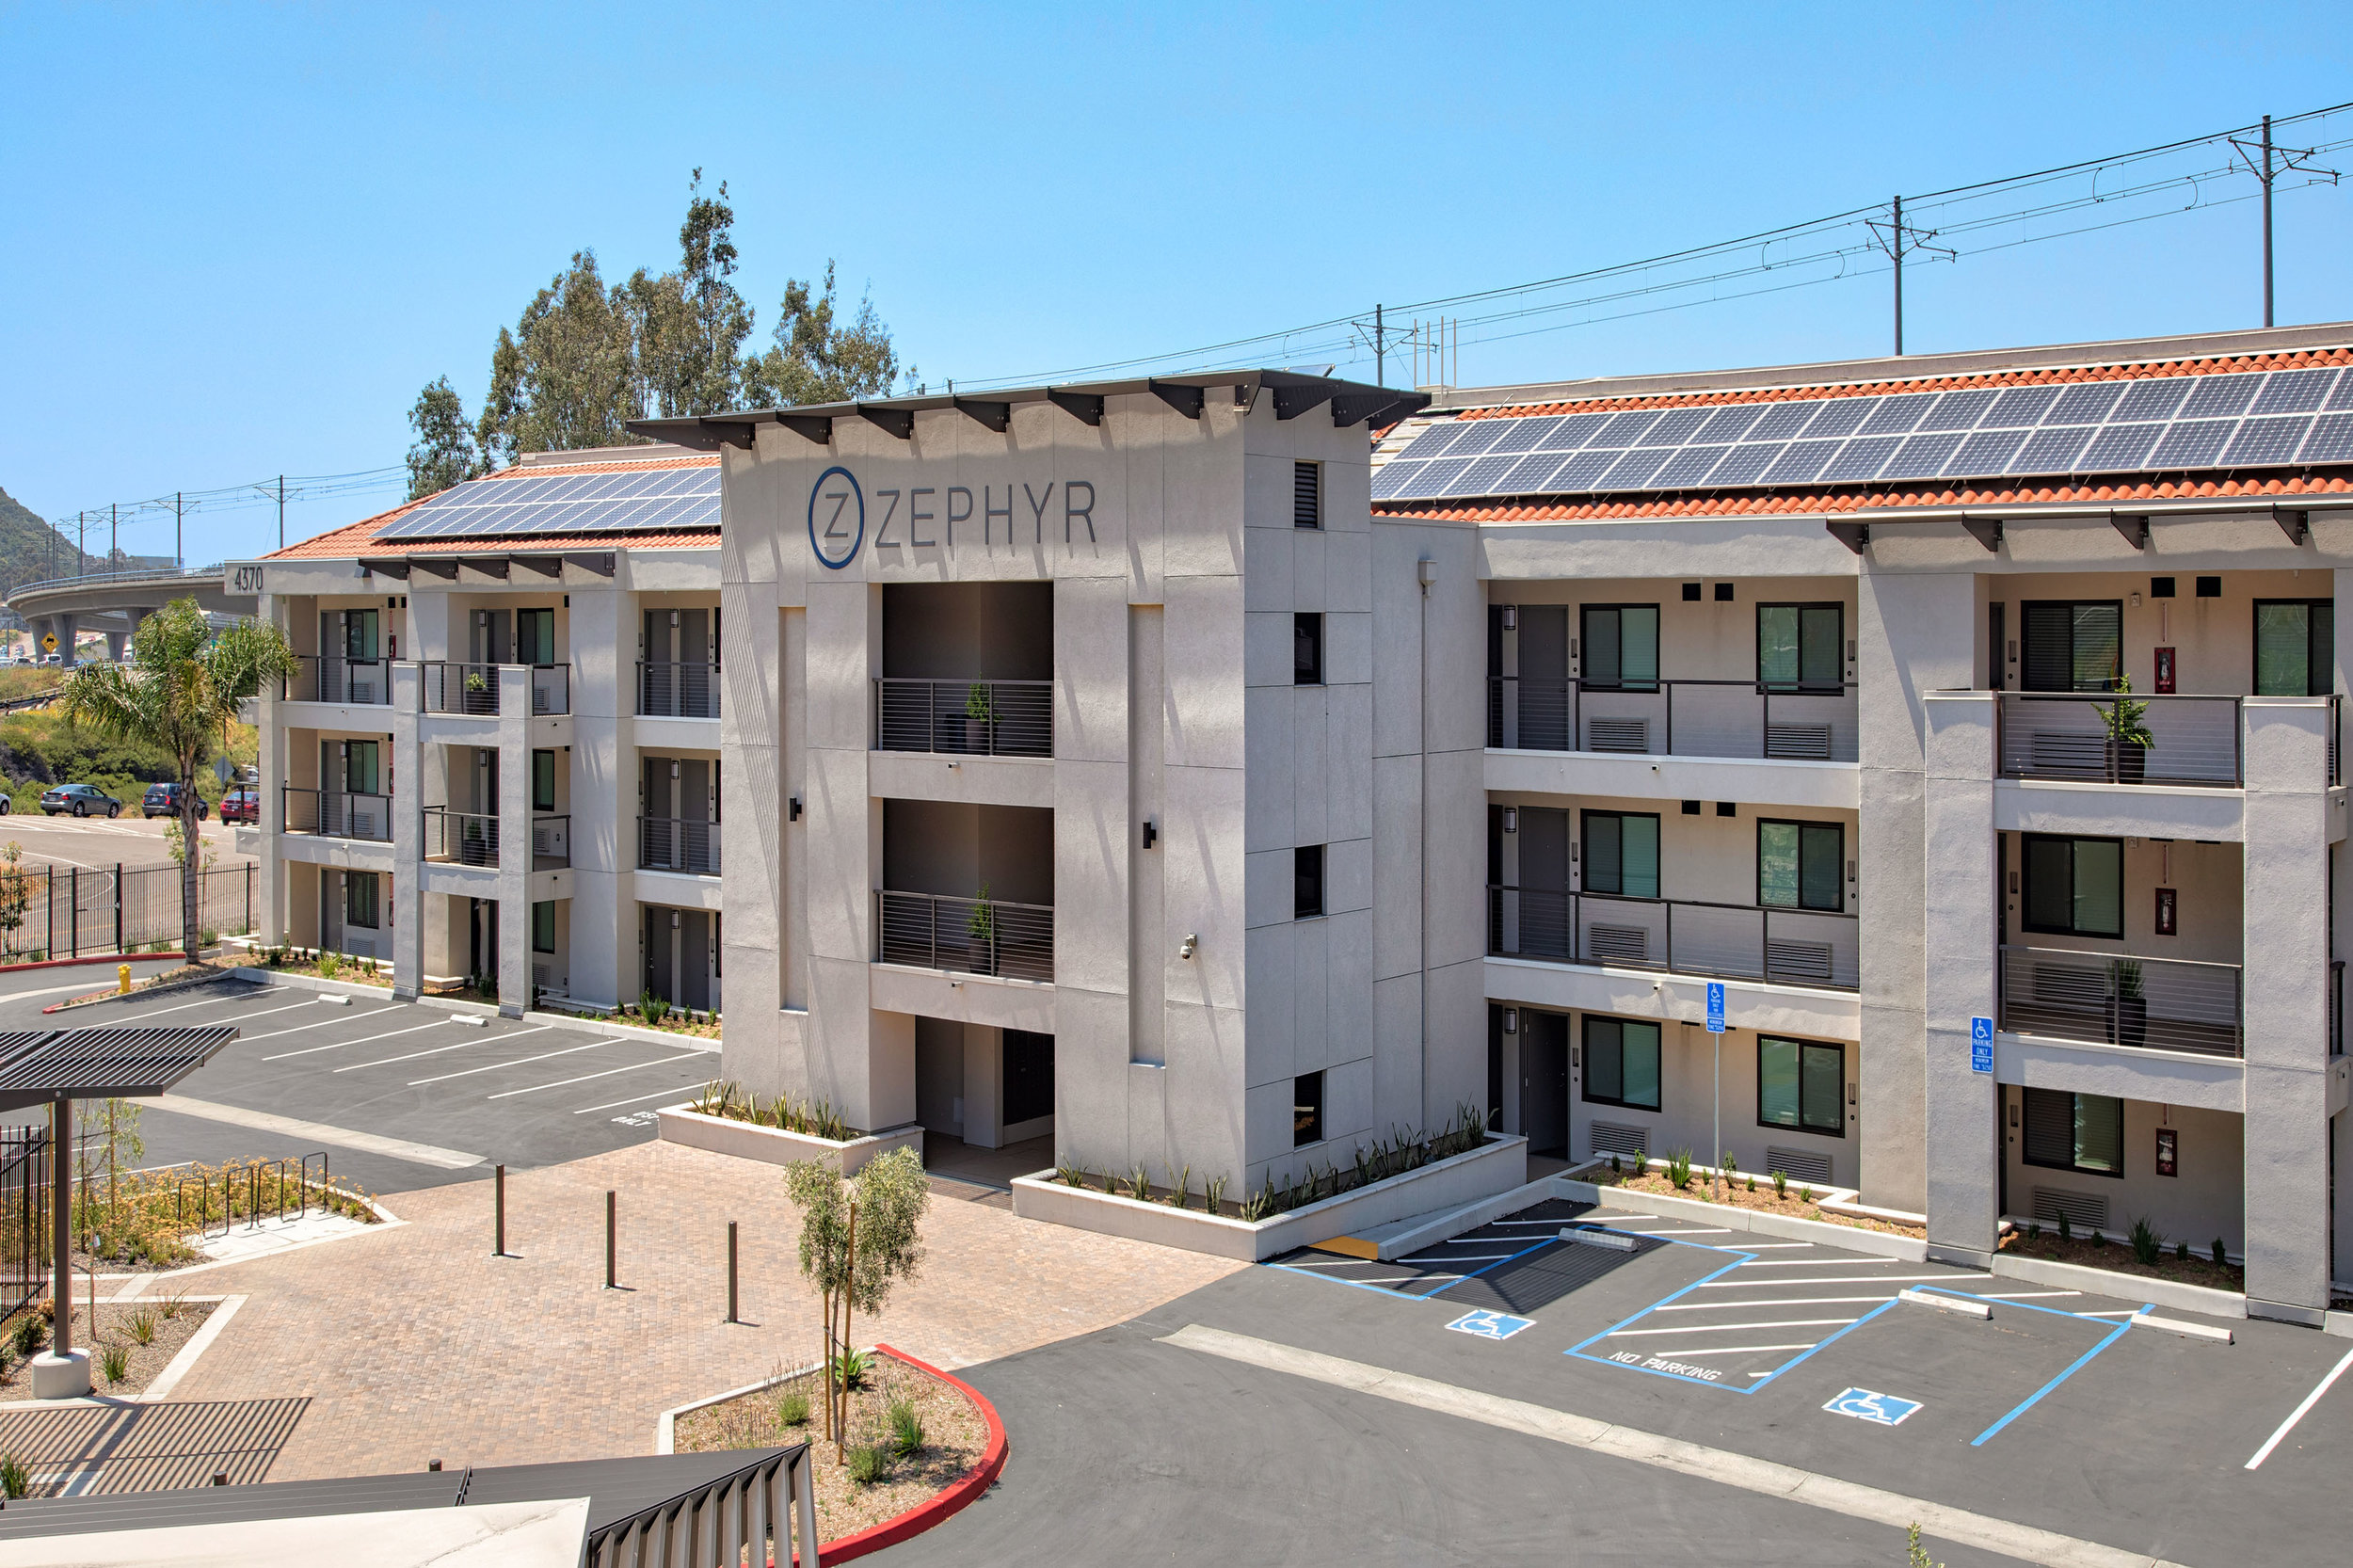 Less than two years to convert Motel 6 to new housing.